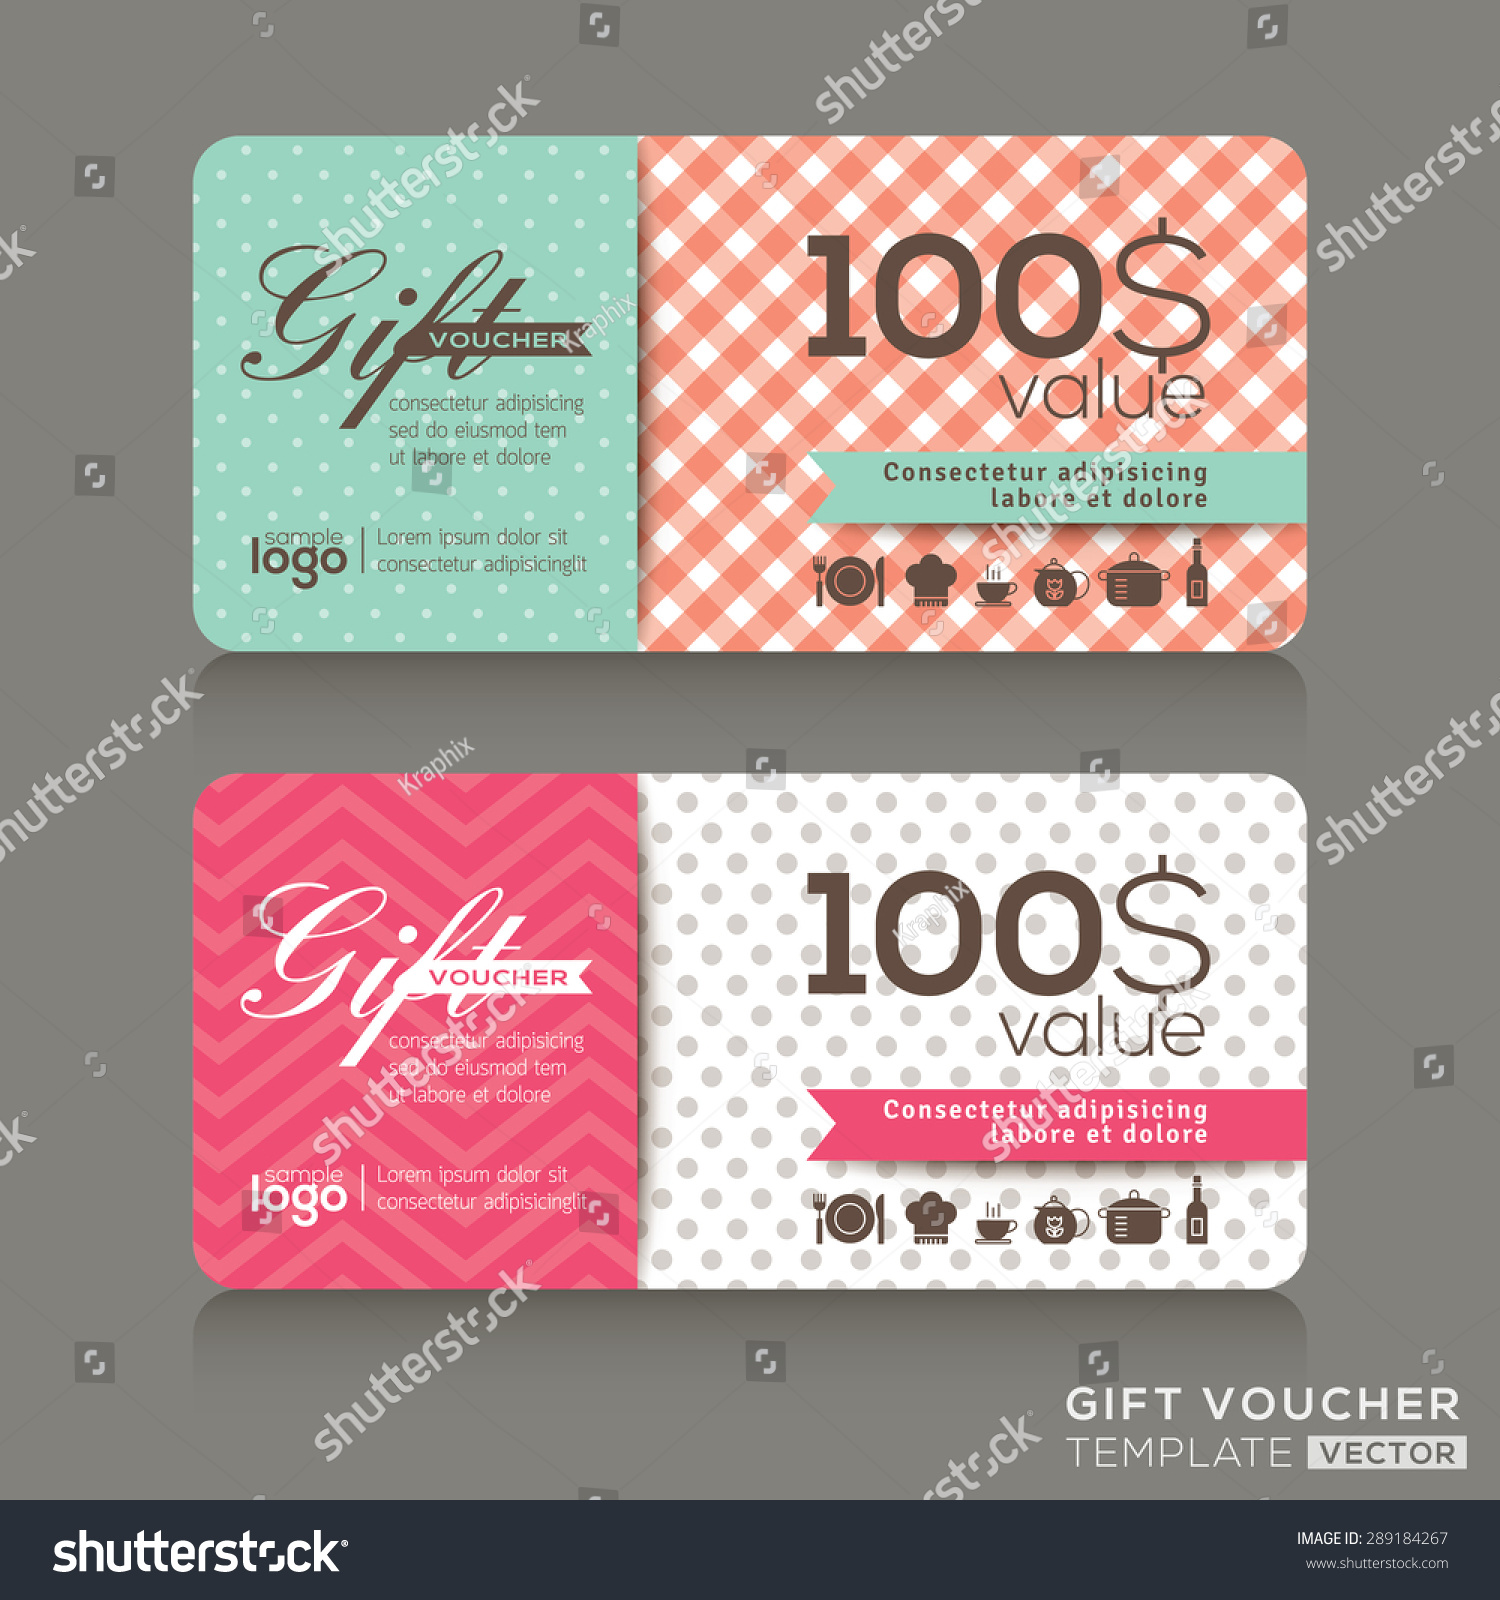 cute gift voucher certificate coupon design stock vector  cute gift voucher certificate coupon design template